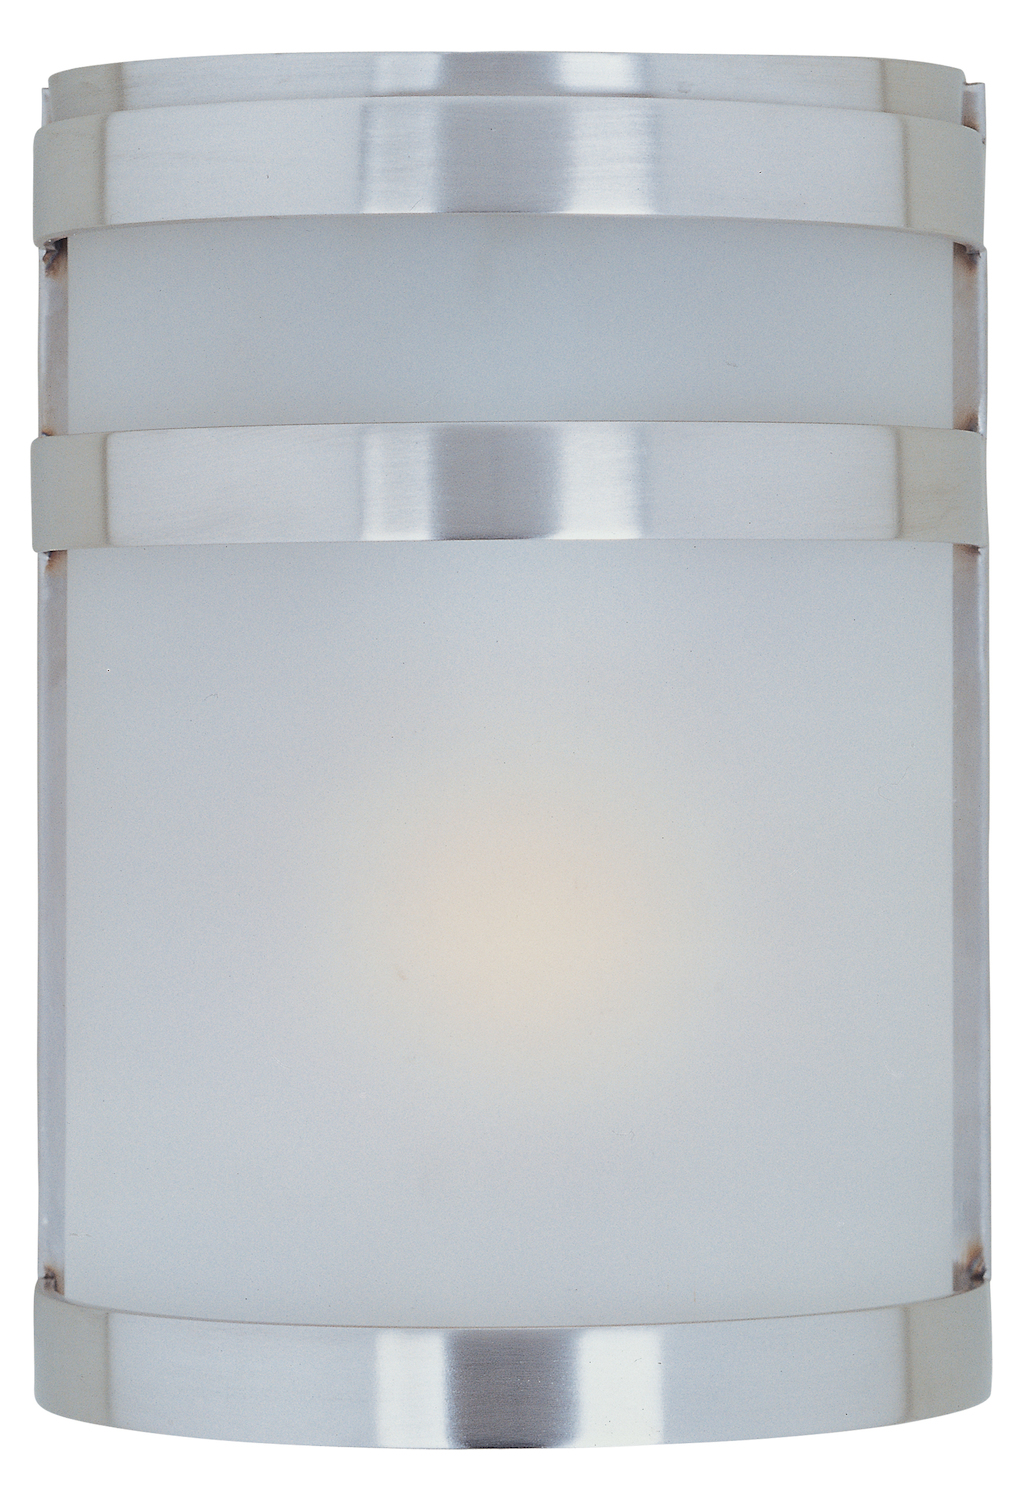 Maxim One Light Frosted Glass Stainless Steel Outdoor Wall Light